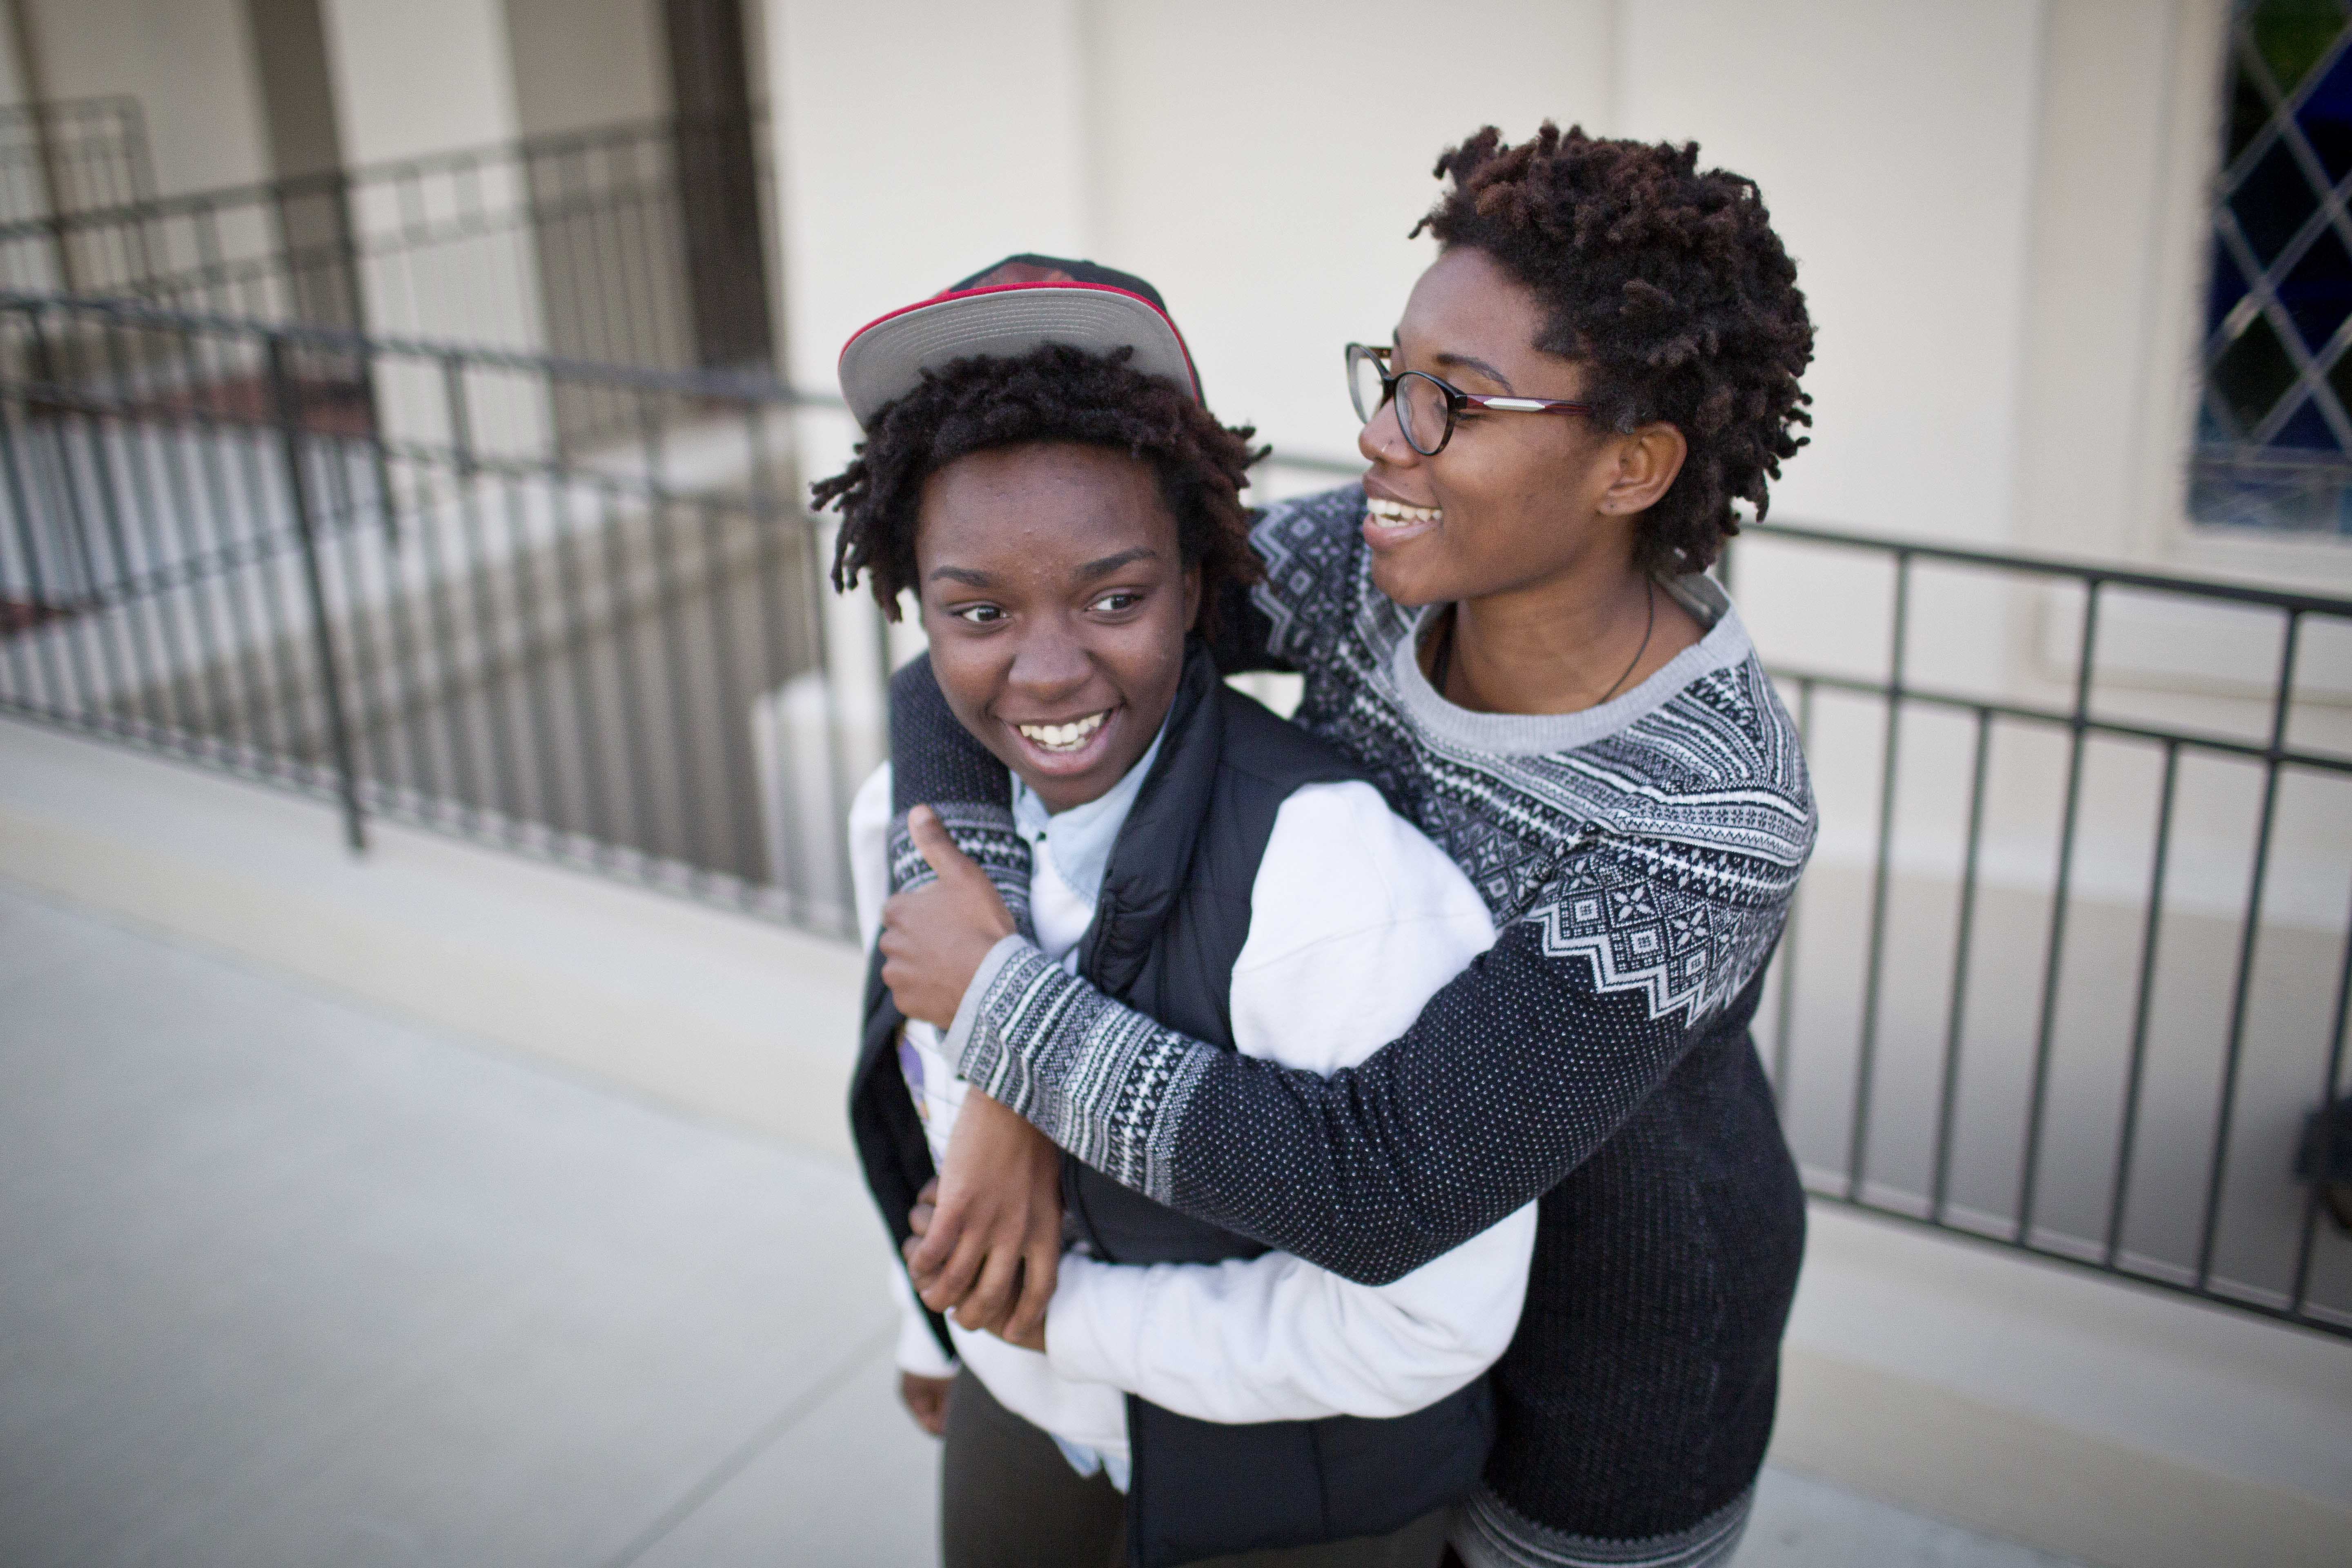 After court ruling, Alabama seeks to stall same-sex marriages